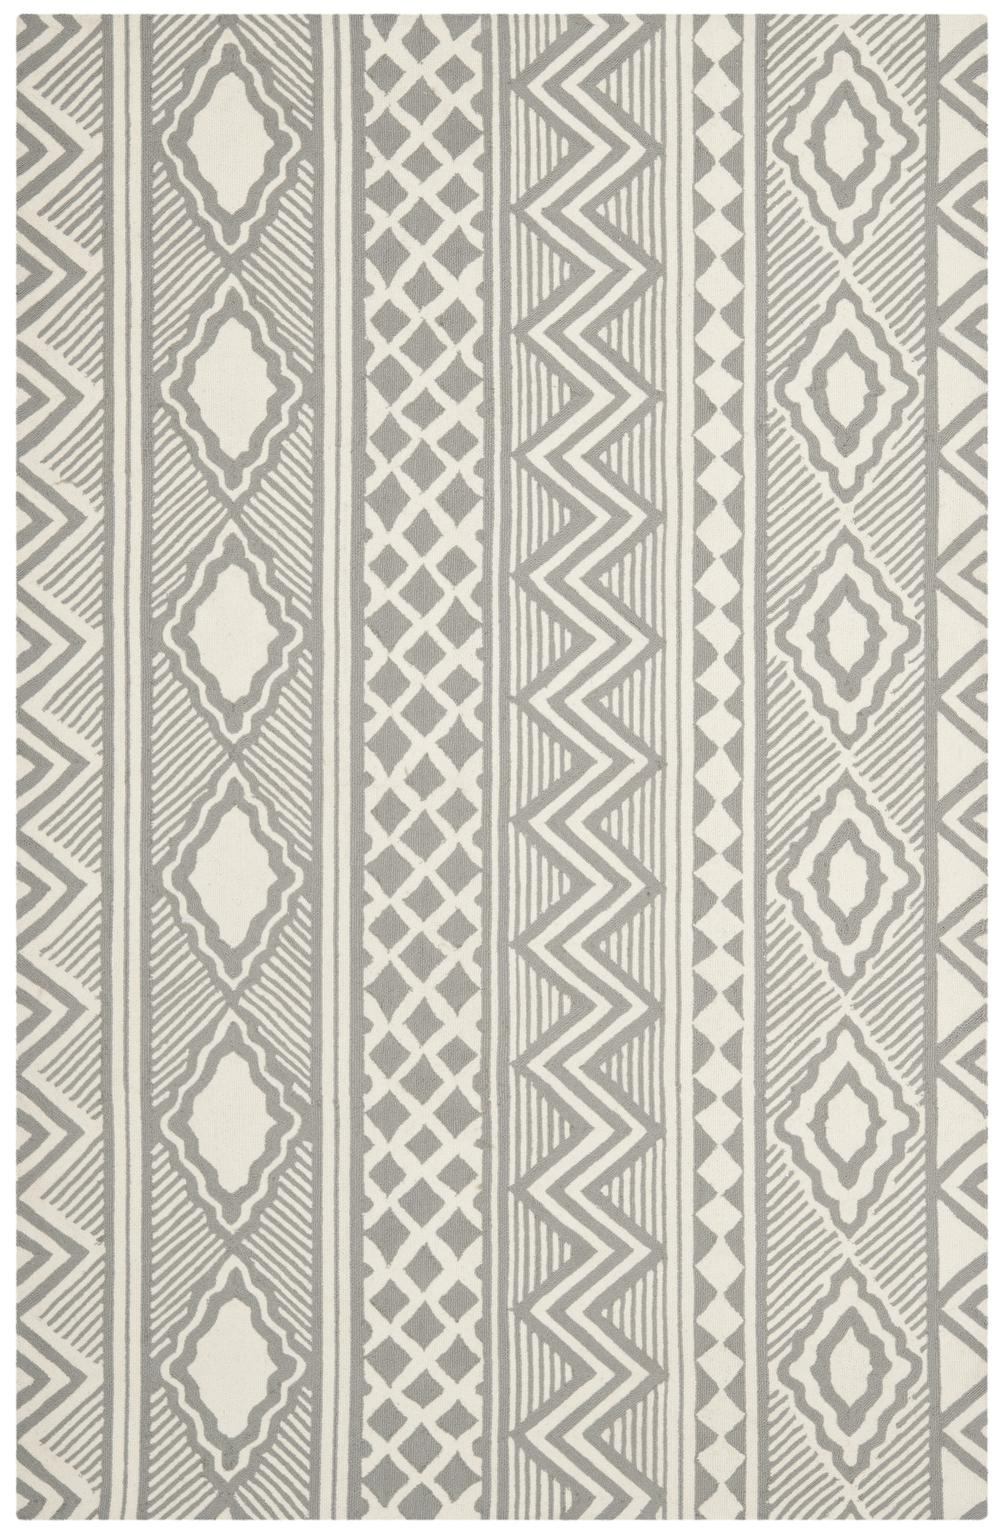 Safavieh Isaac Mizrahi IMR353B Grey and Ivory Area Rug